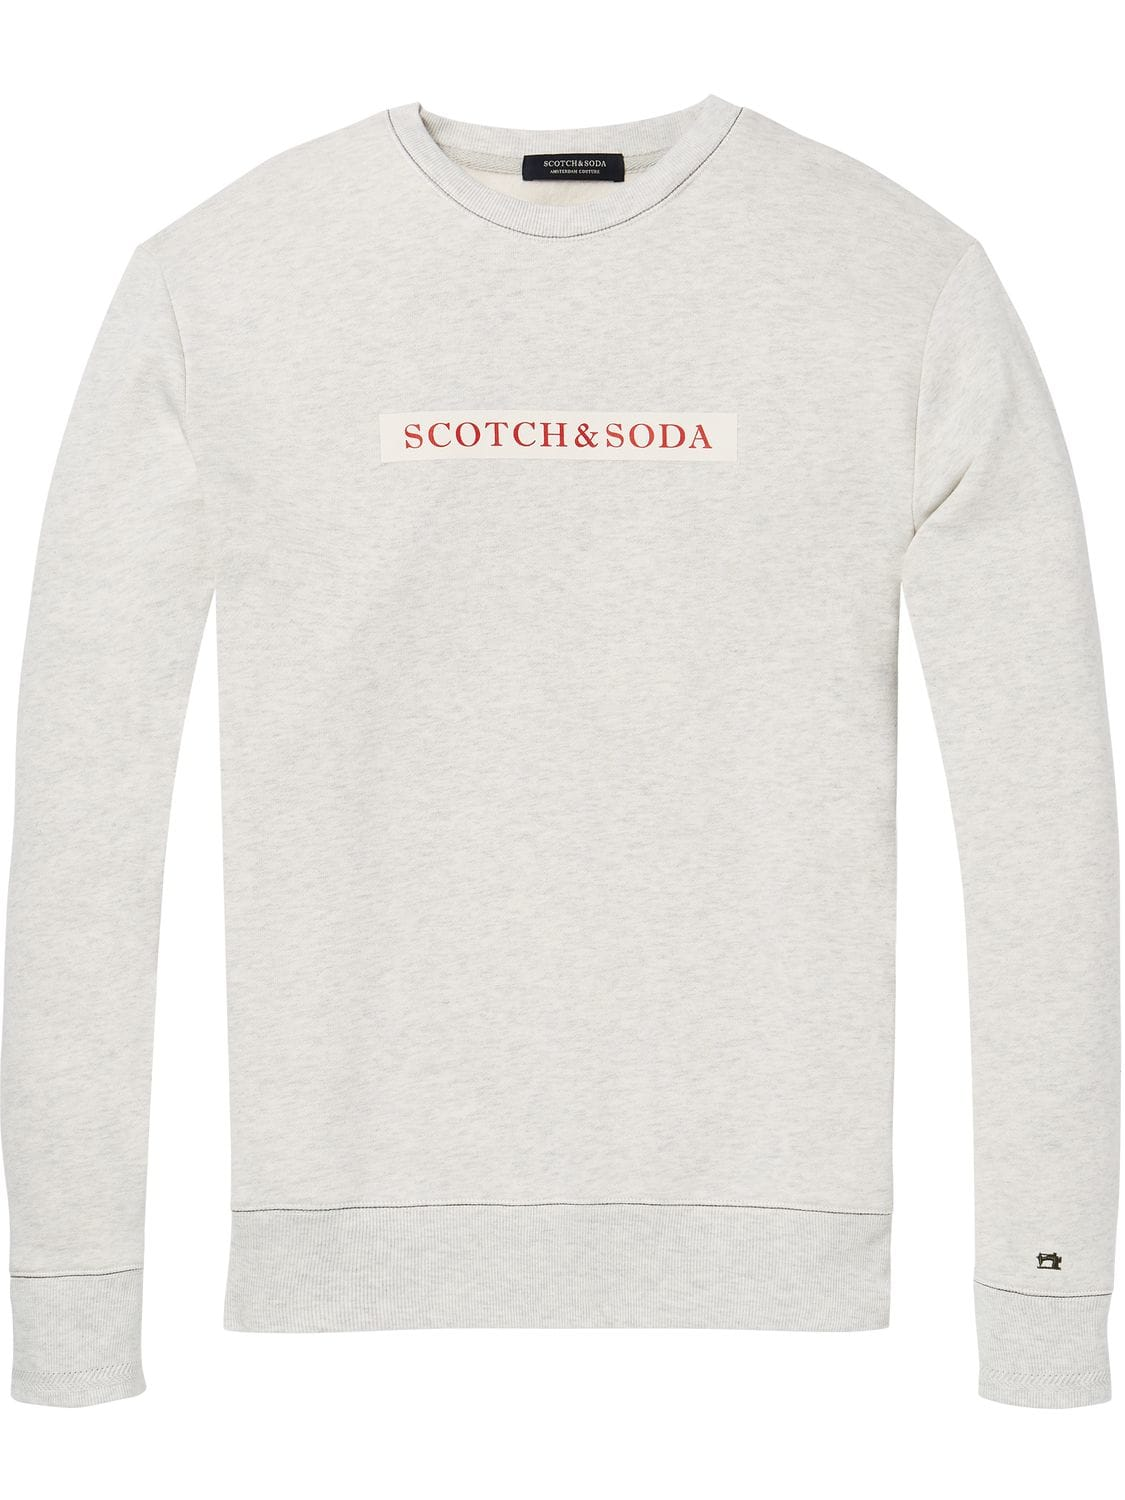 Witte /melee sweater heren Scotch & Soda - 145482 - 1161